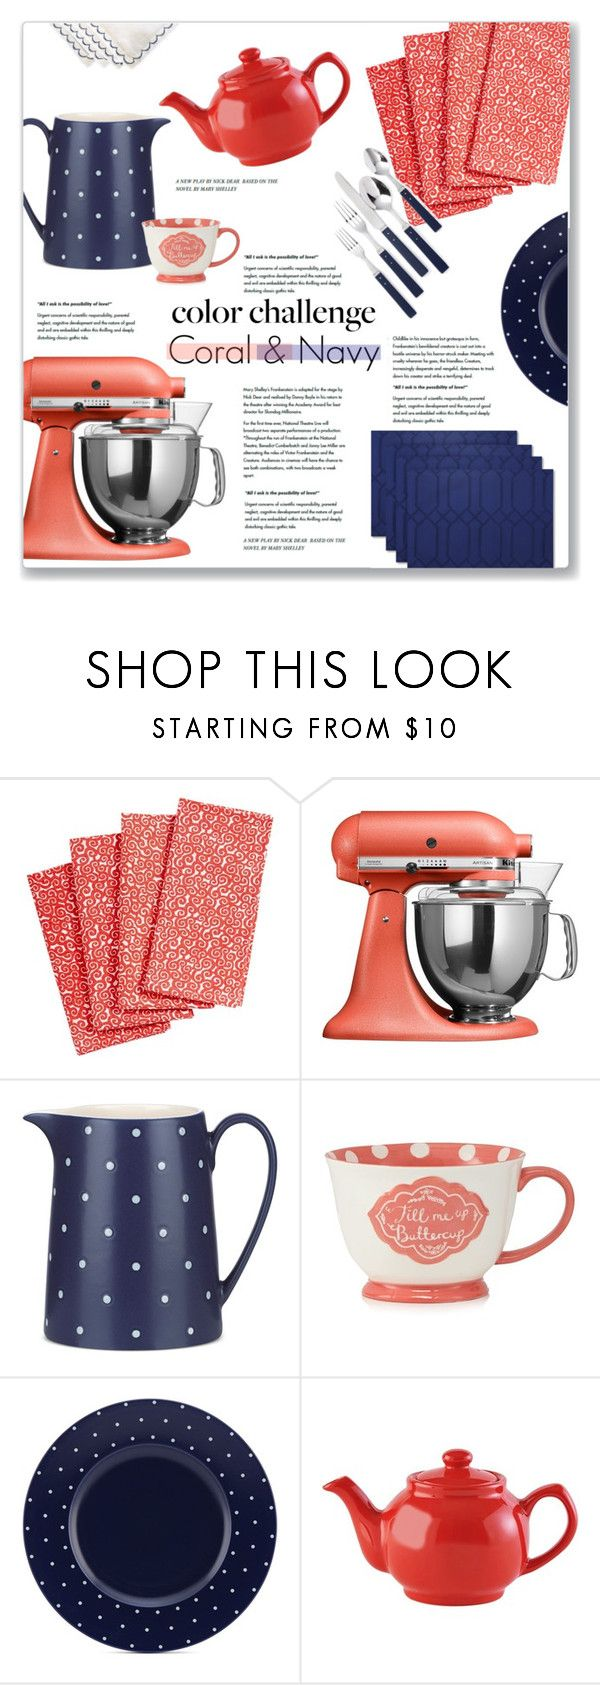 Coral & Navy Kitchen Accessories\